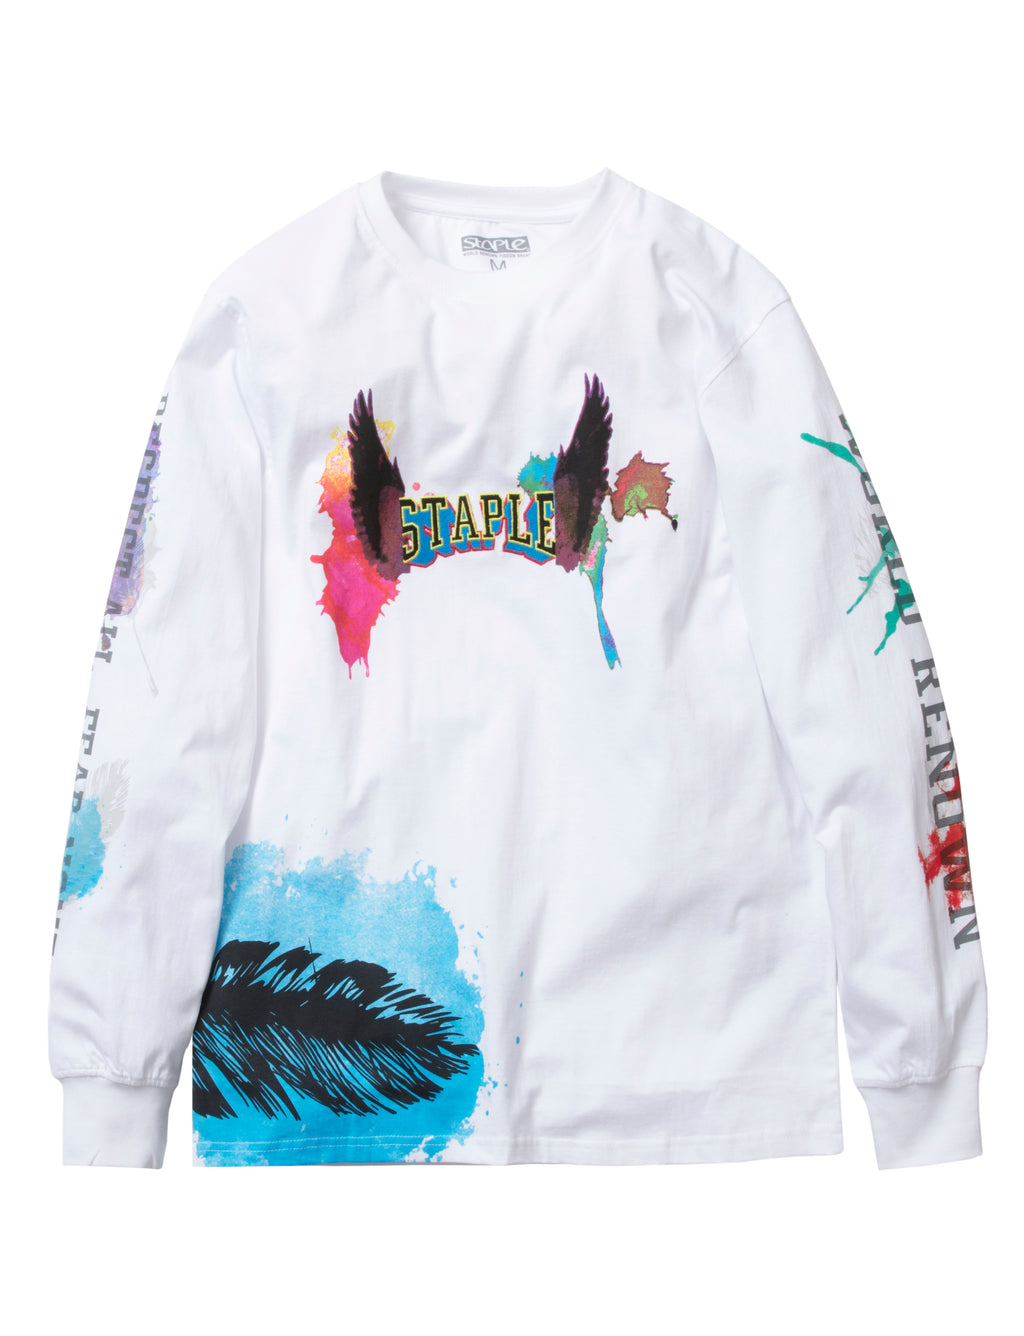 Waterbrush Logo L/S Tee - Tee | Staple Pigeon